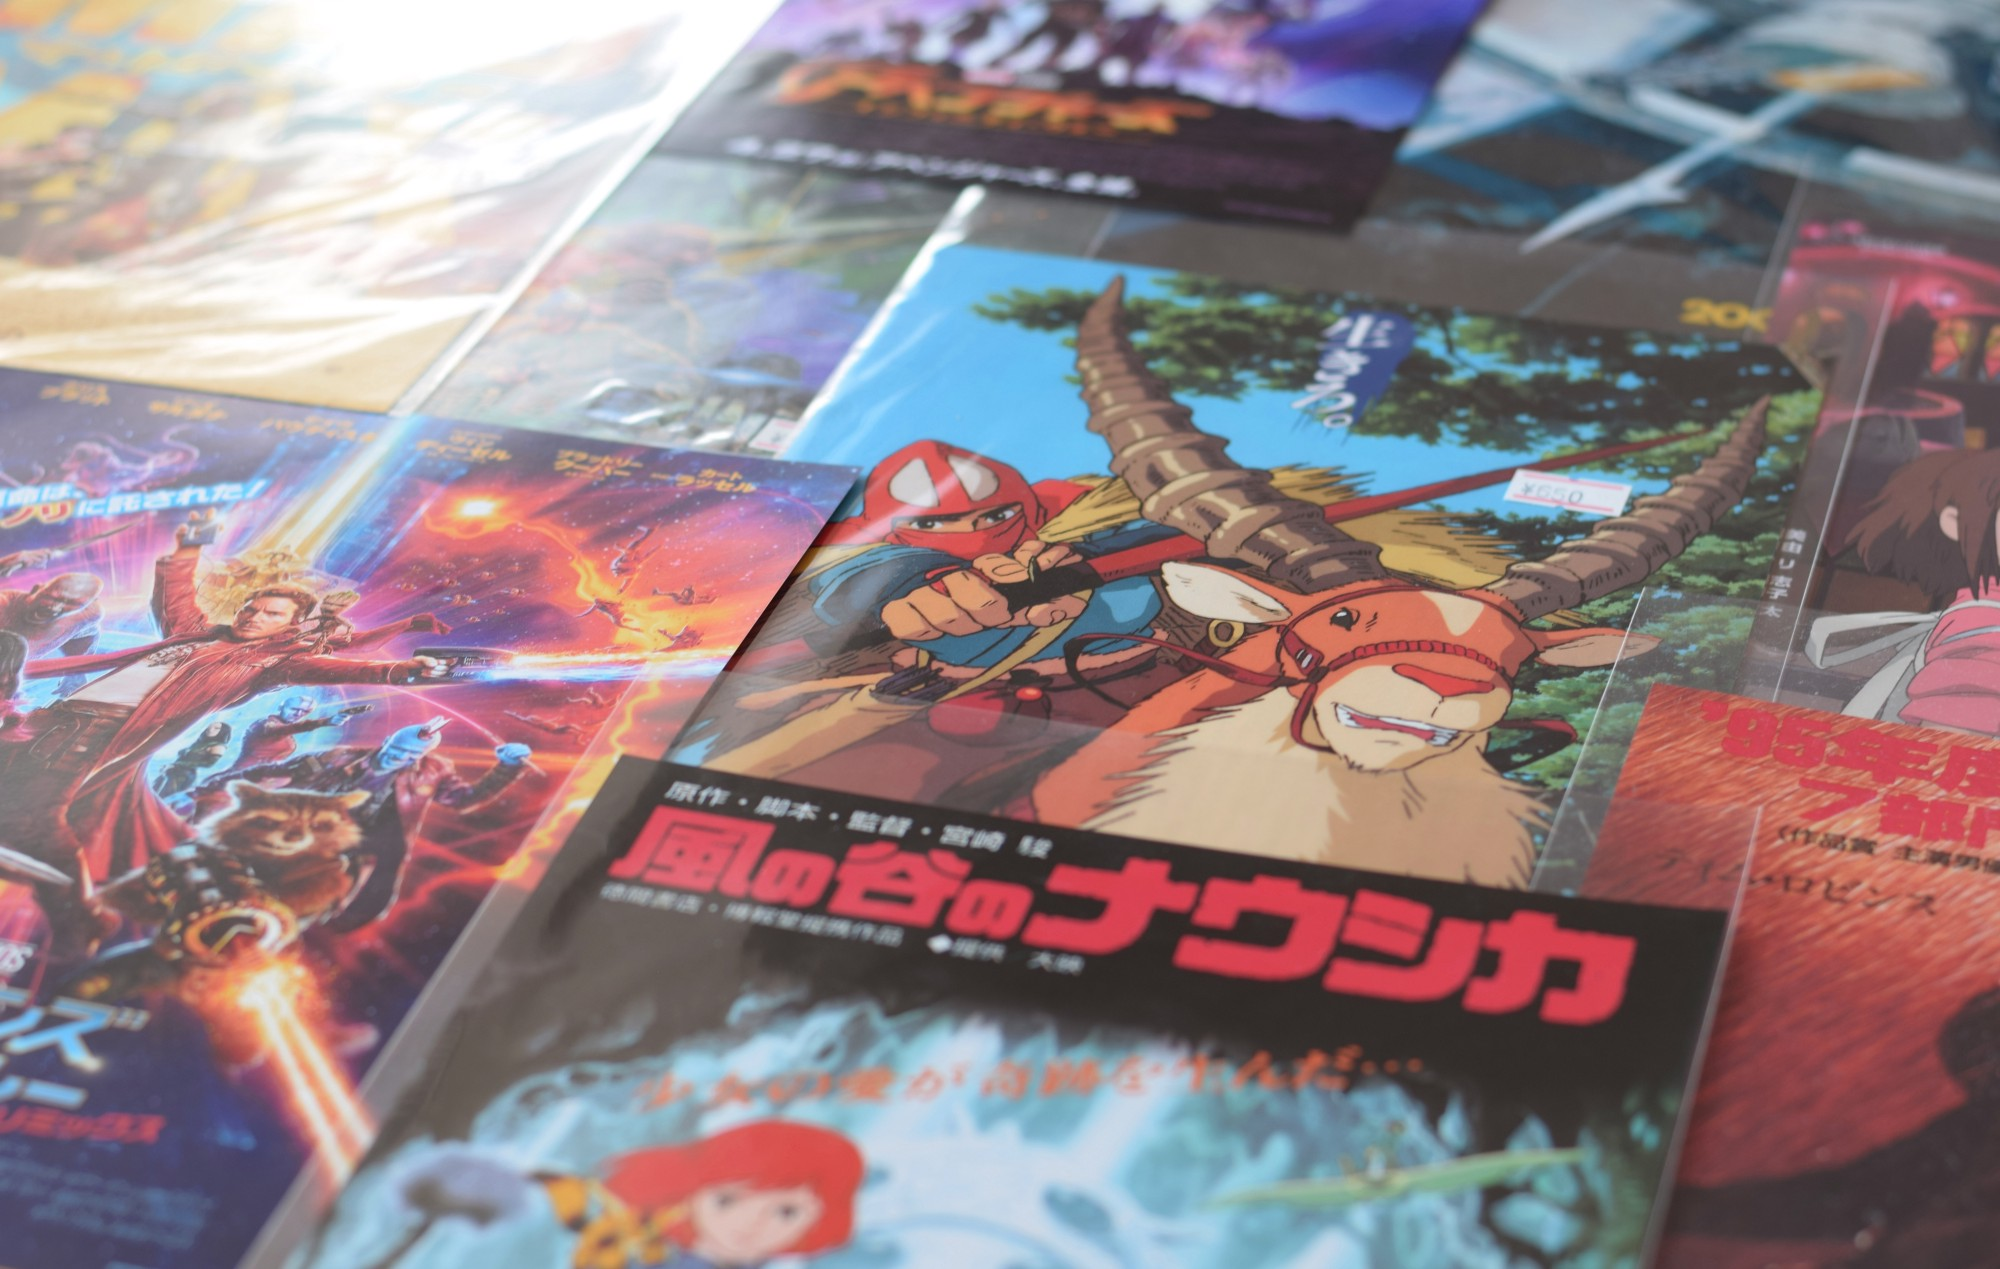 Comic book covers—some in Japanese.